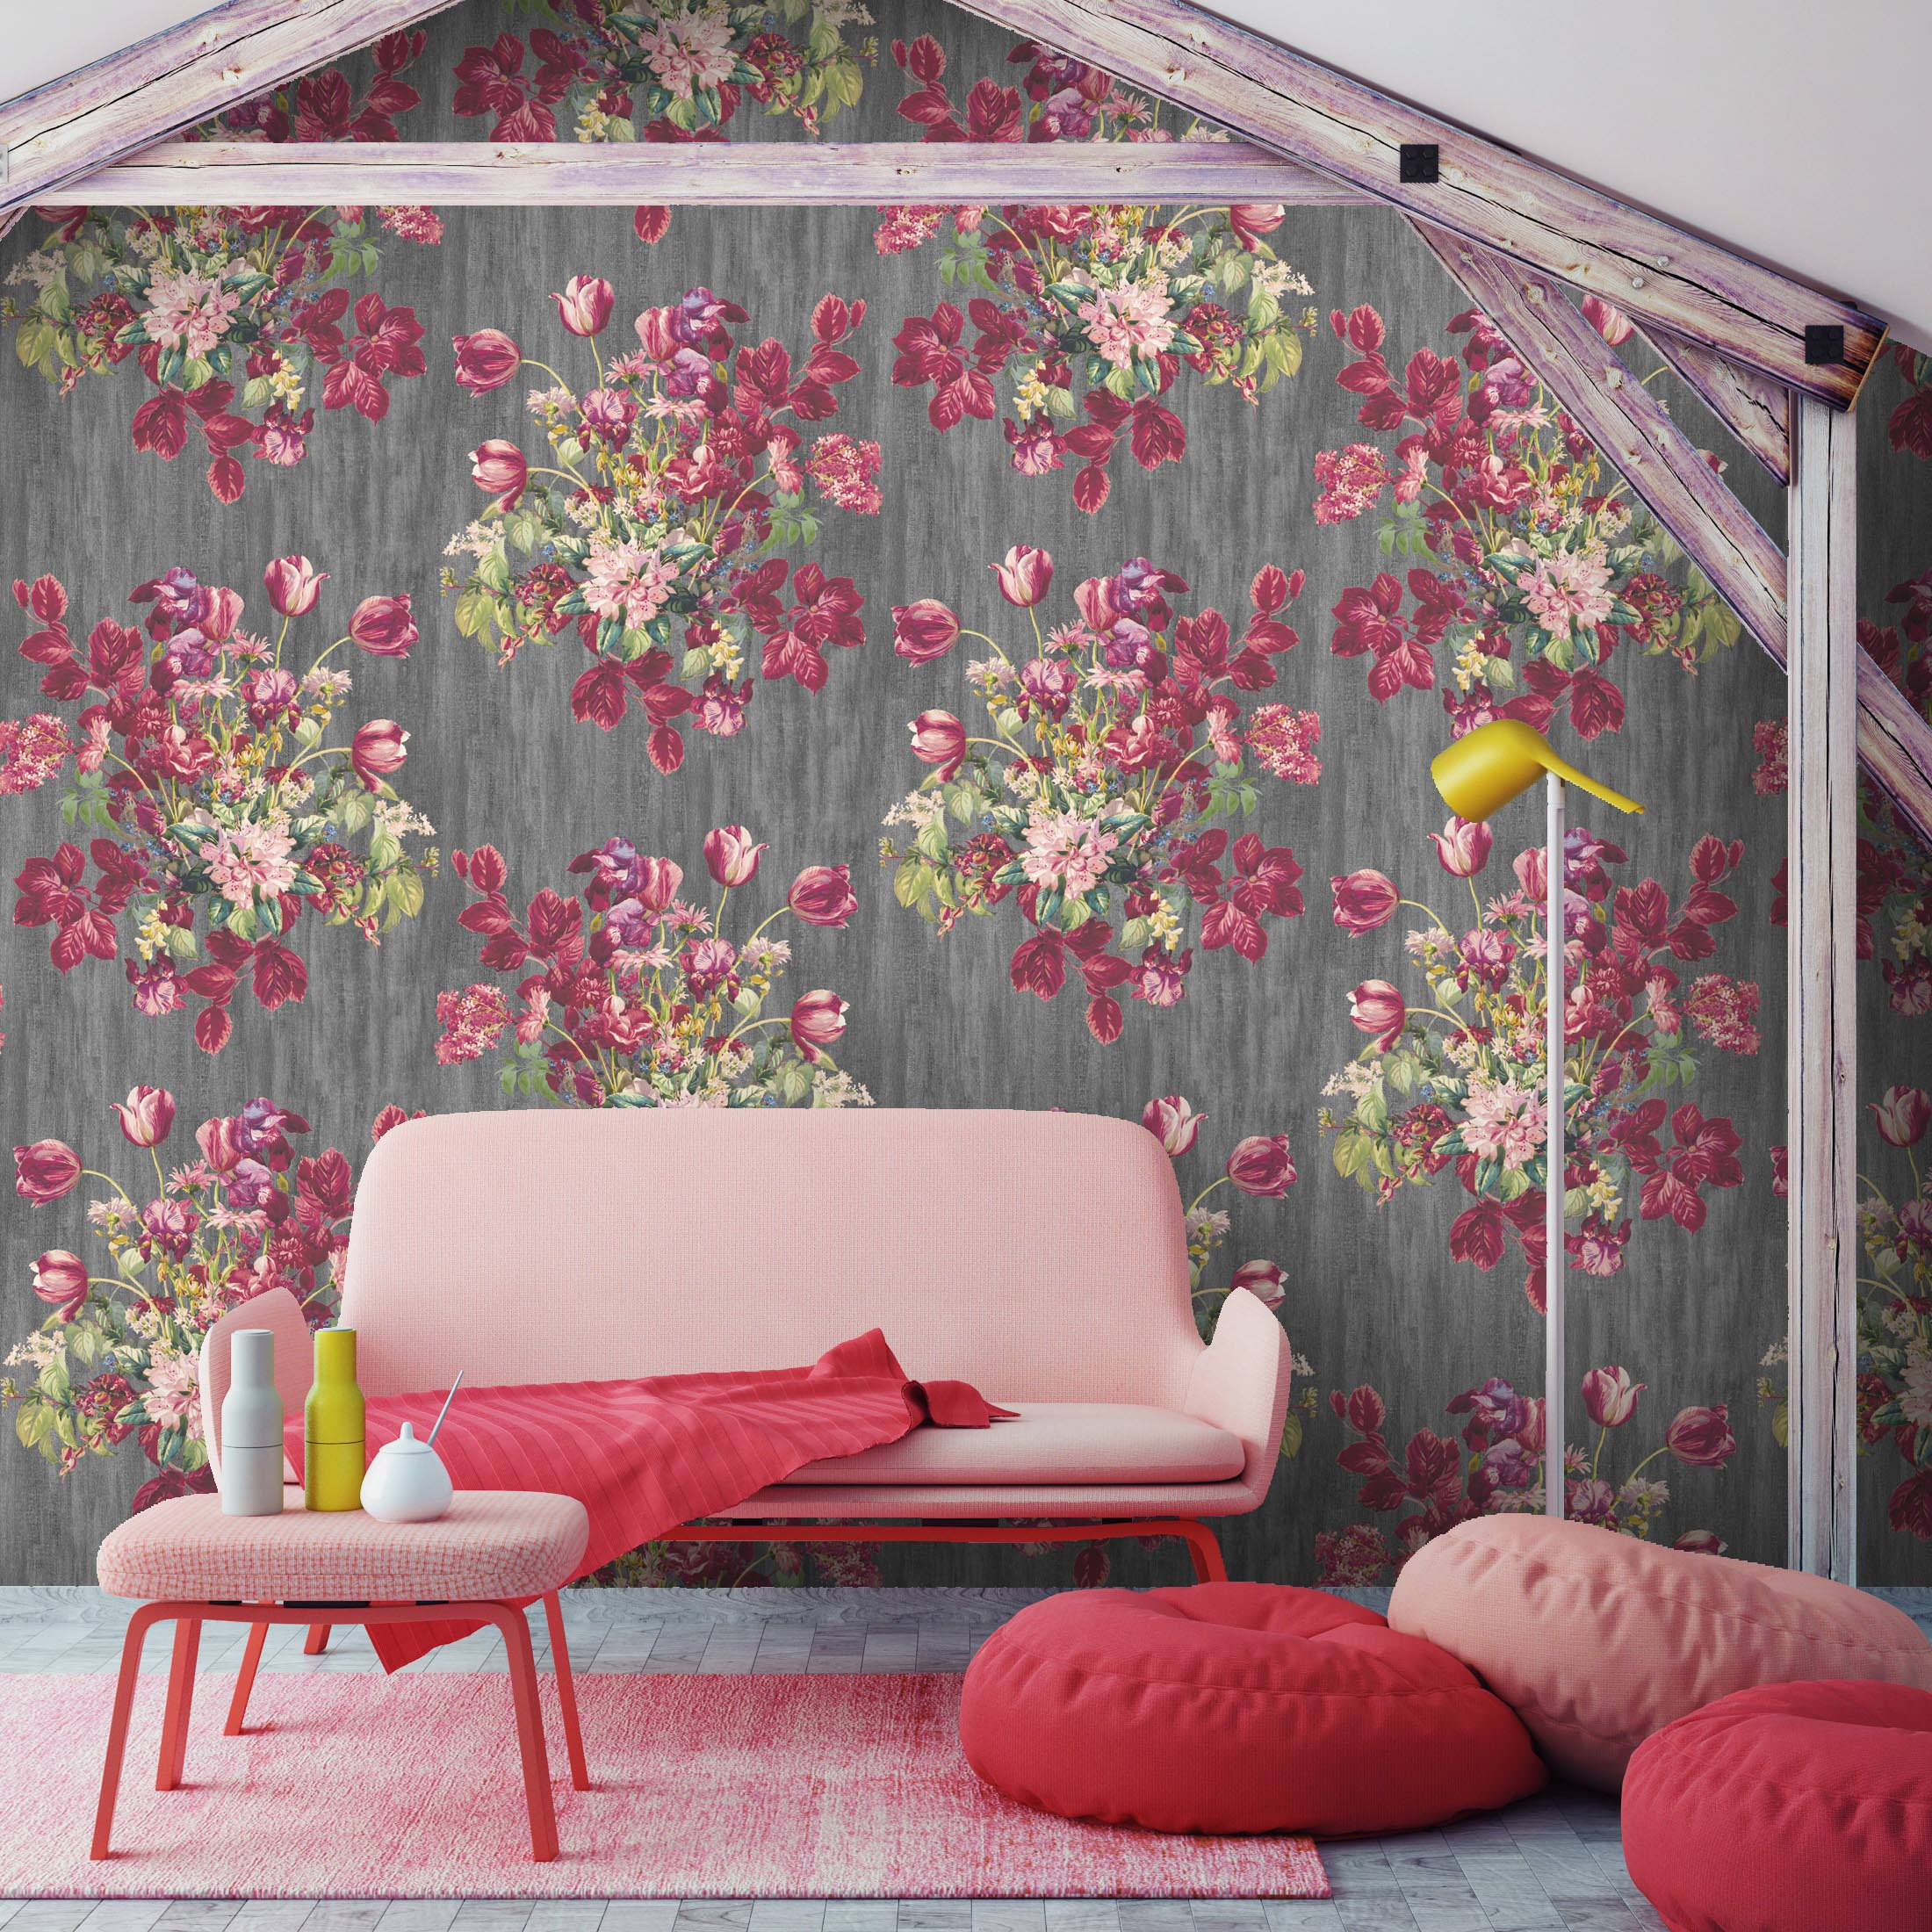 Wallpaper by Woodchip & Magnolia